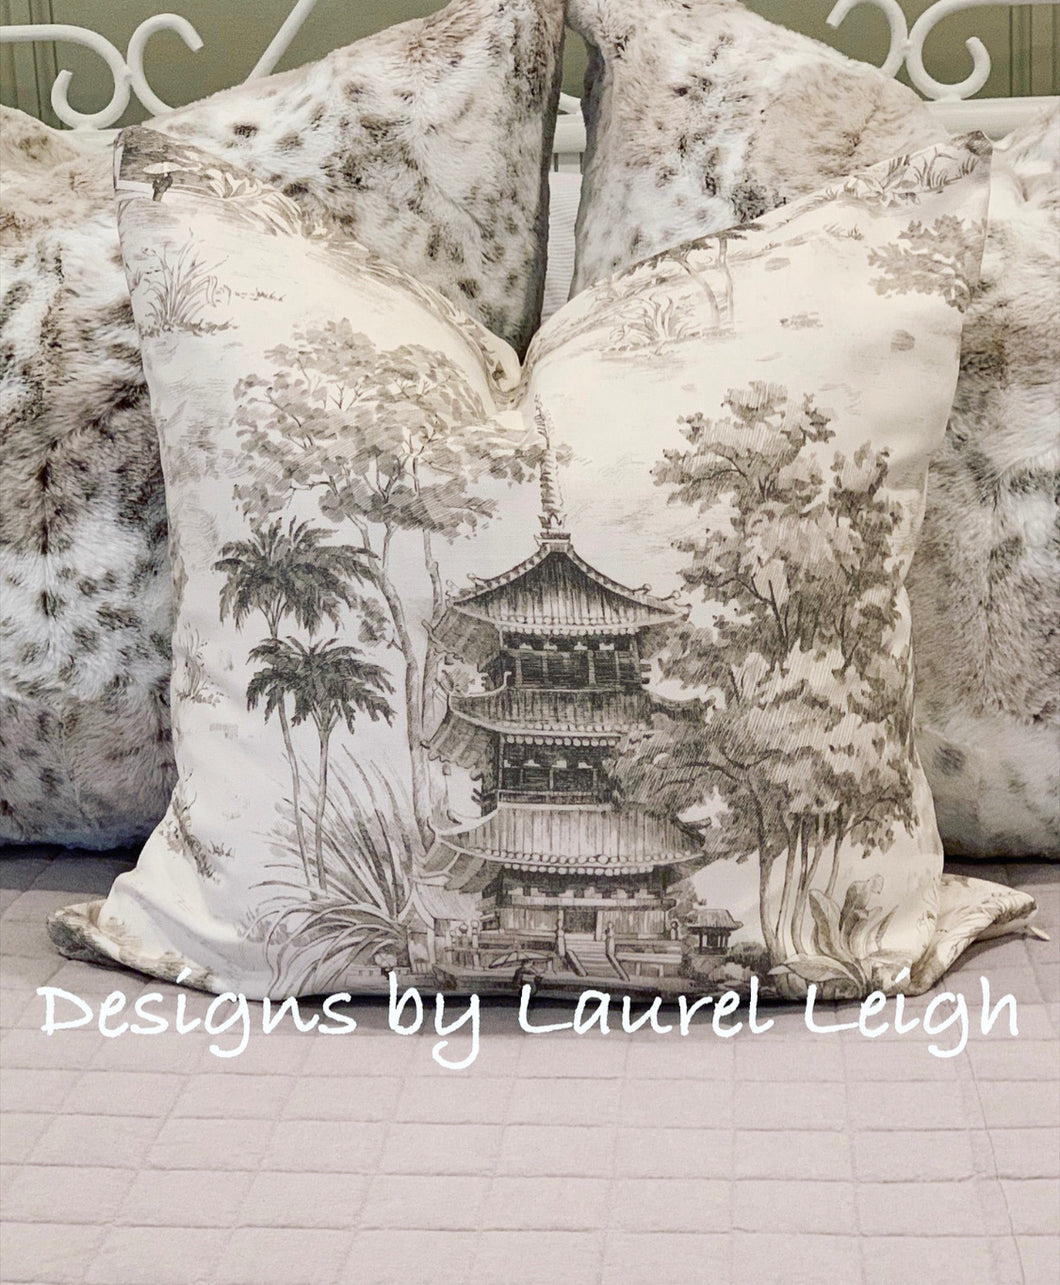 Chinoiserie Pagoda Motif Pillow Cover Set (2) - Griege & Off-White - Ginger jar